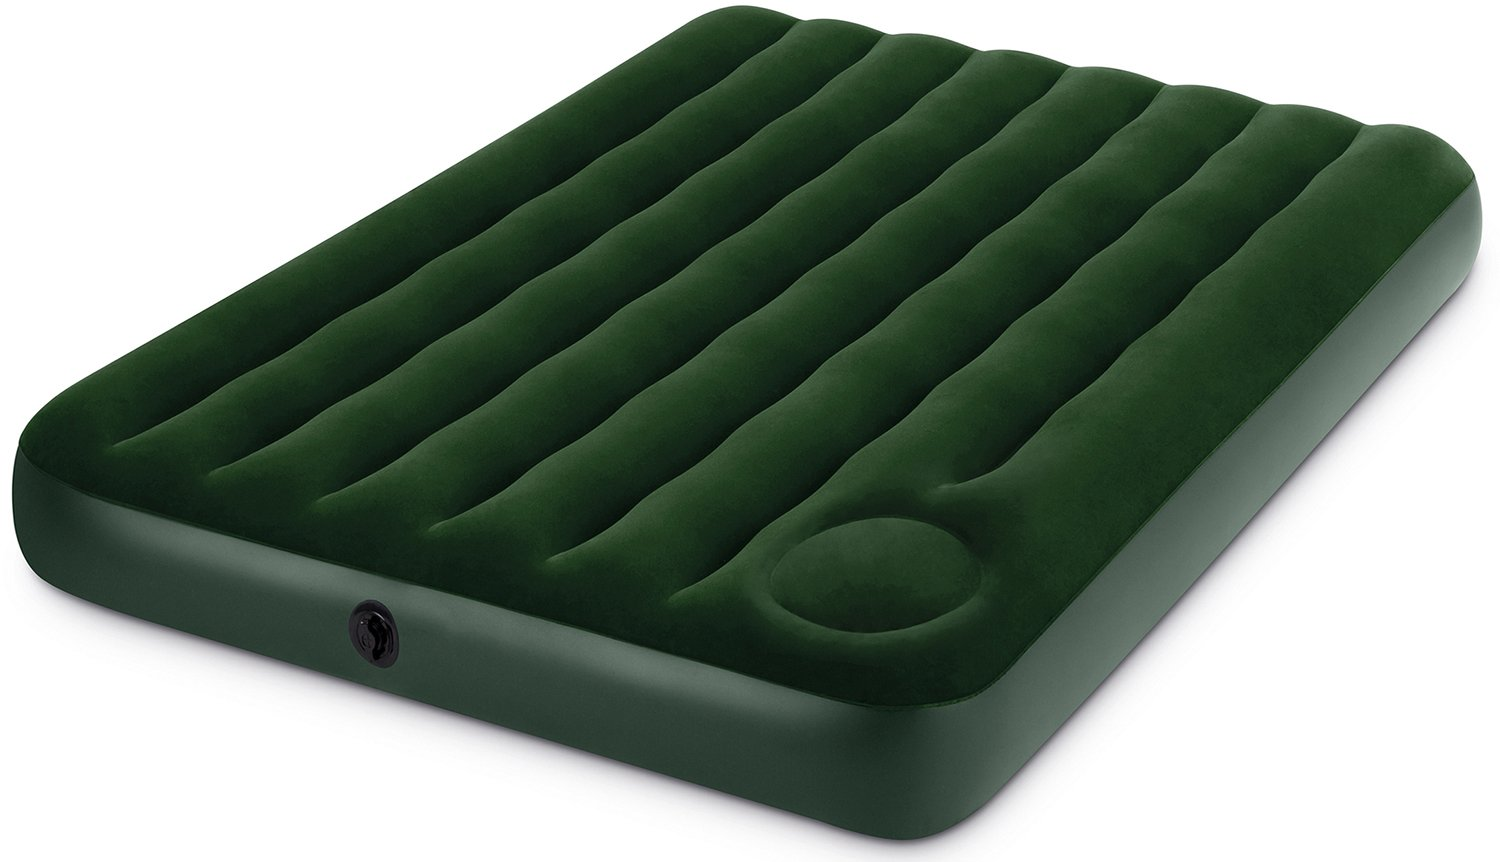 Intex 54 x 75 x 8.75 EASY INFLATE DOWNY PRESTIGE AIR BED 66928E